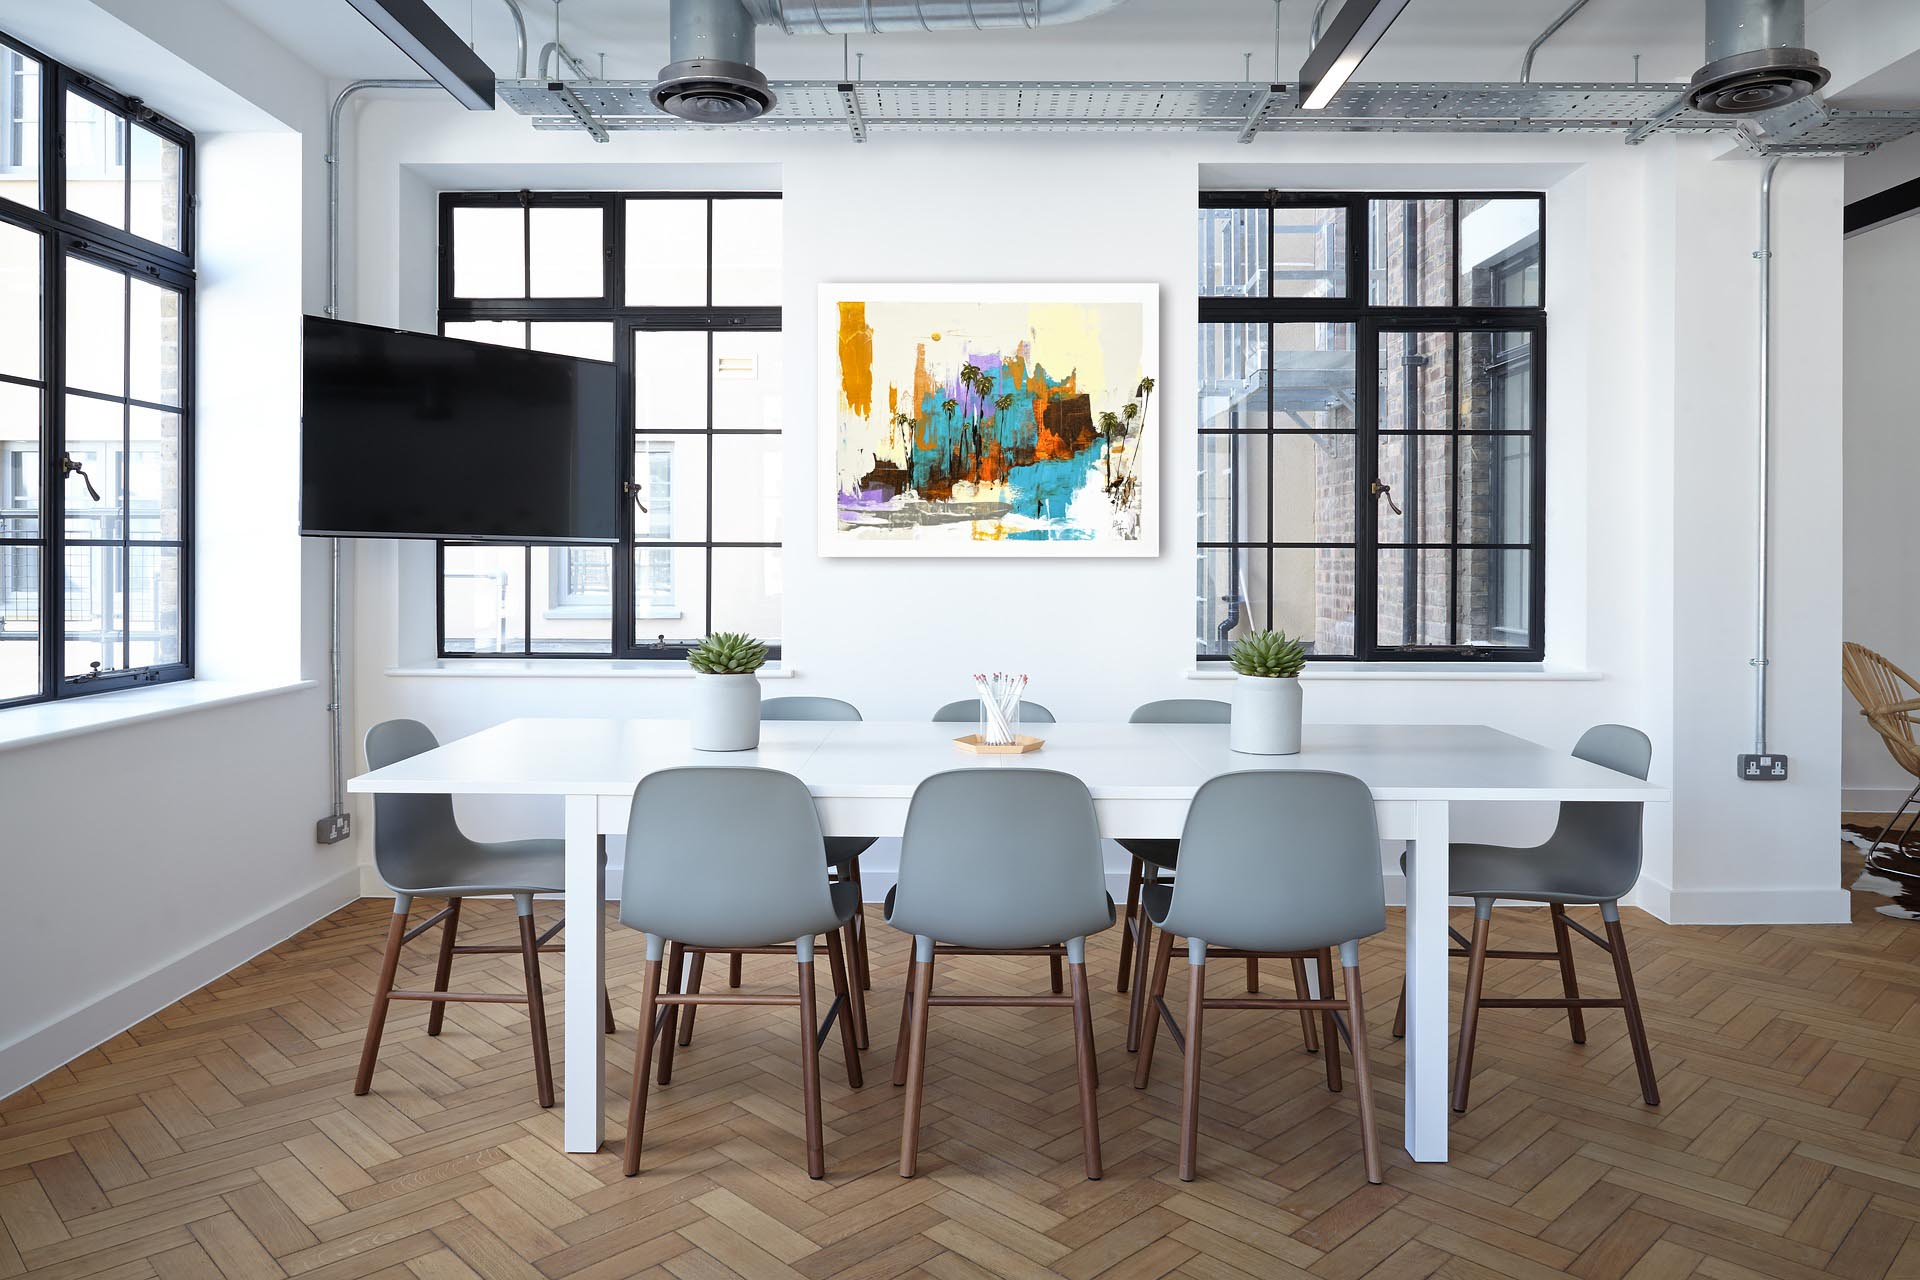 Abstract painting in Modern Industrial work space